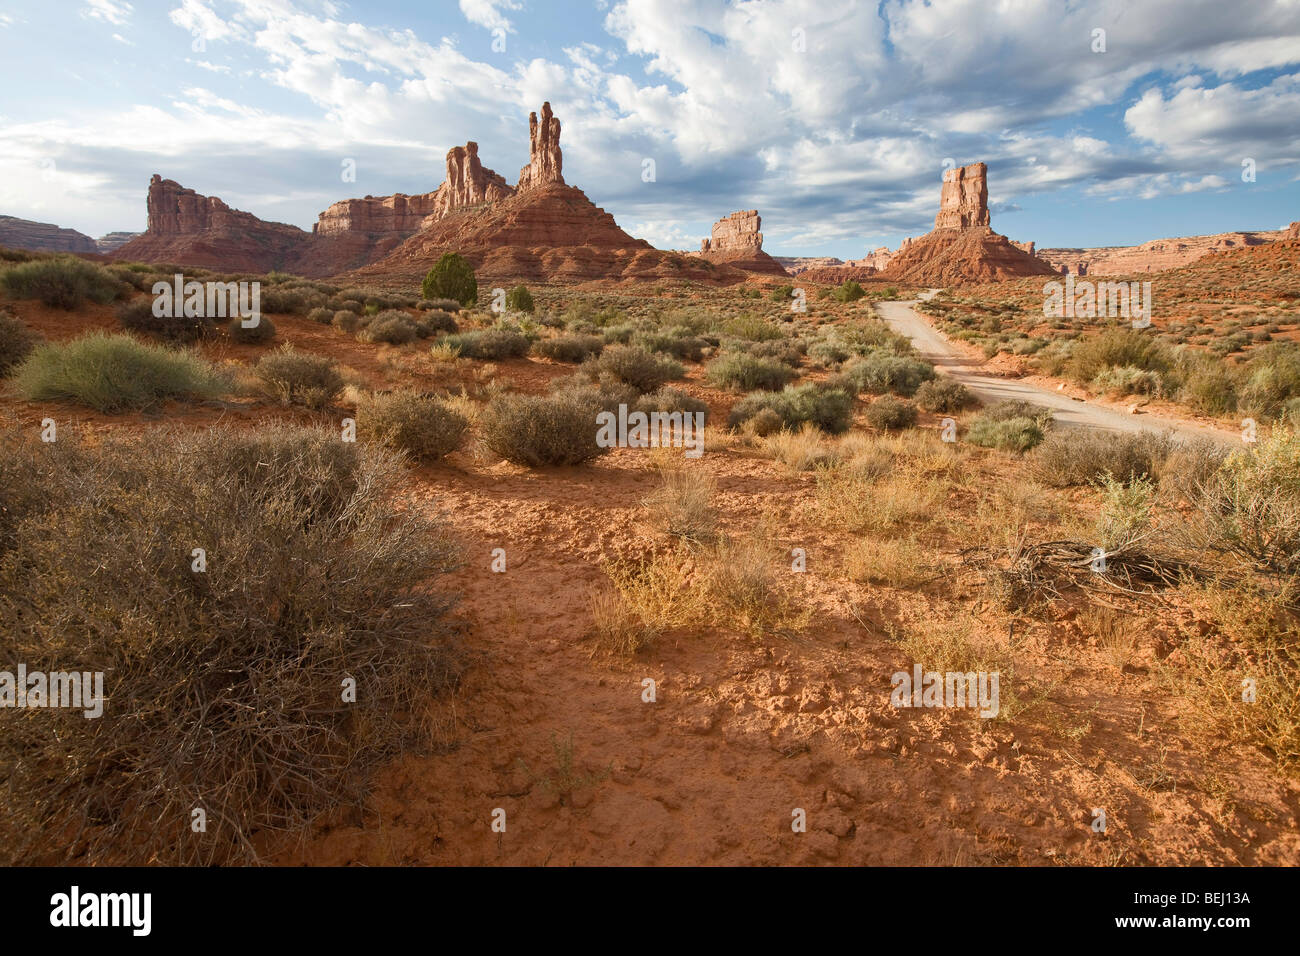 Valley of the Gods, Utah - Stock Image